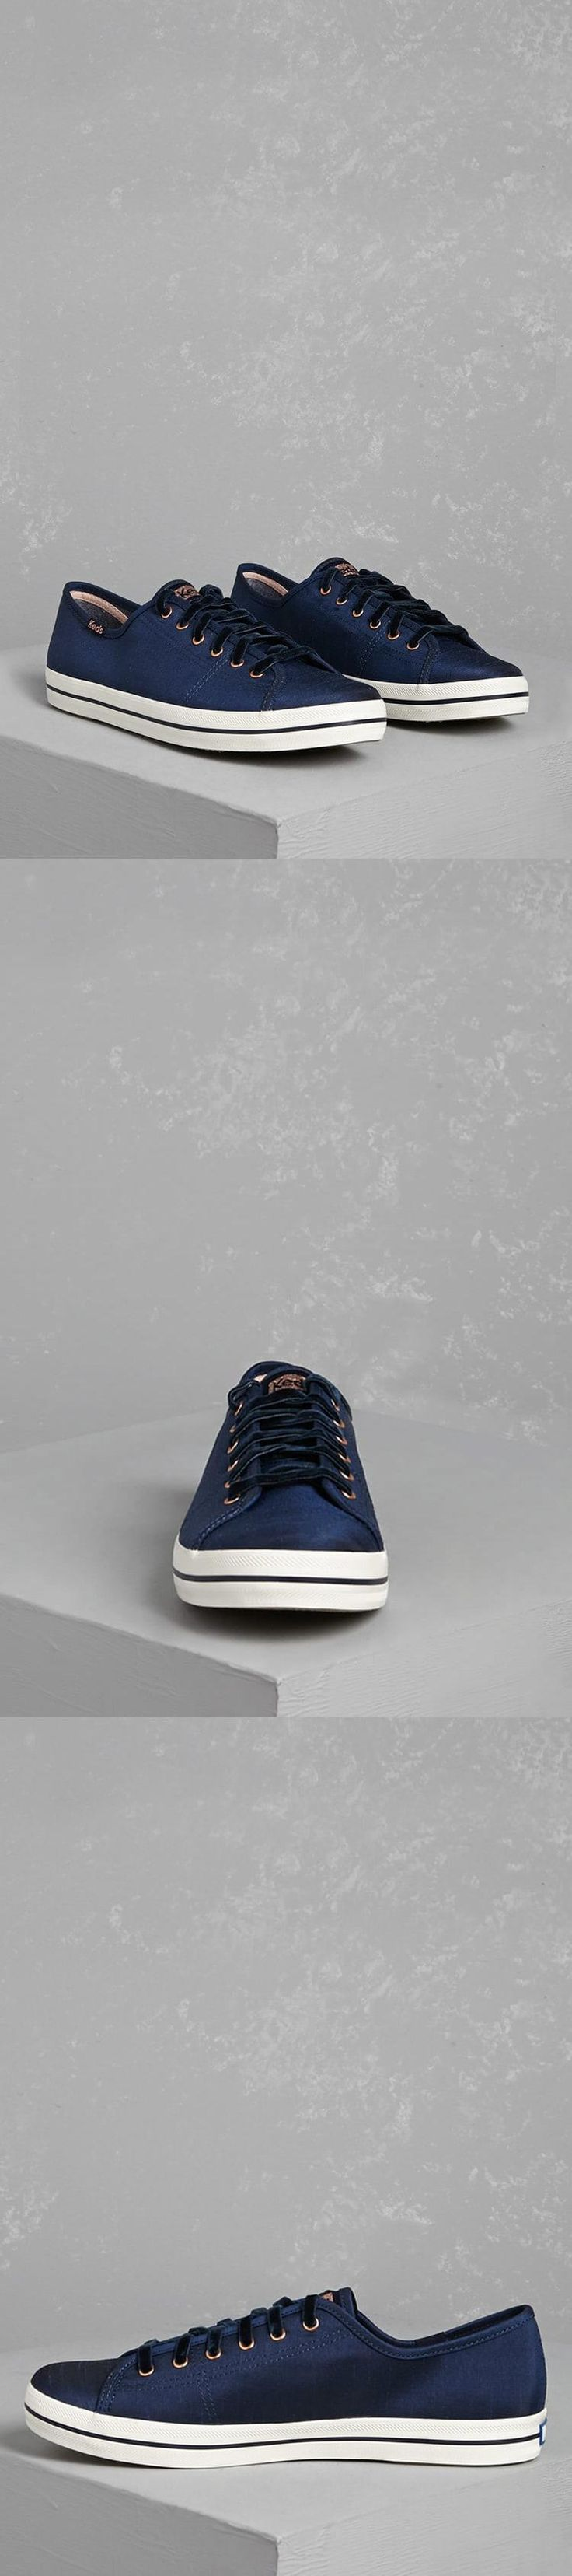 Keds Low-Top Tennis Shoes // 60.00 USD // Forever 21